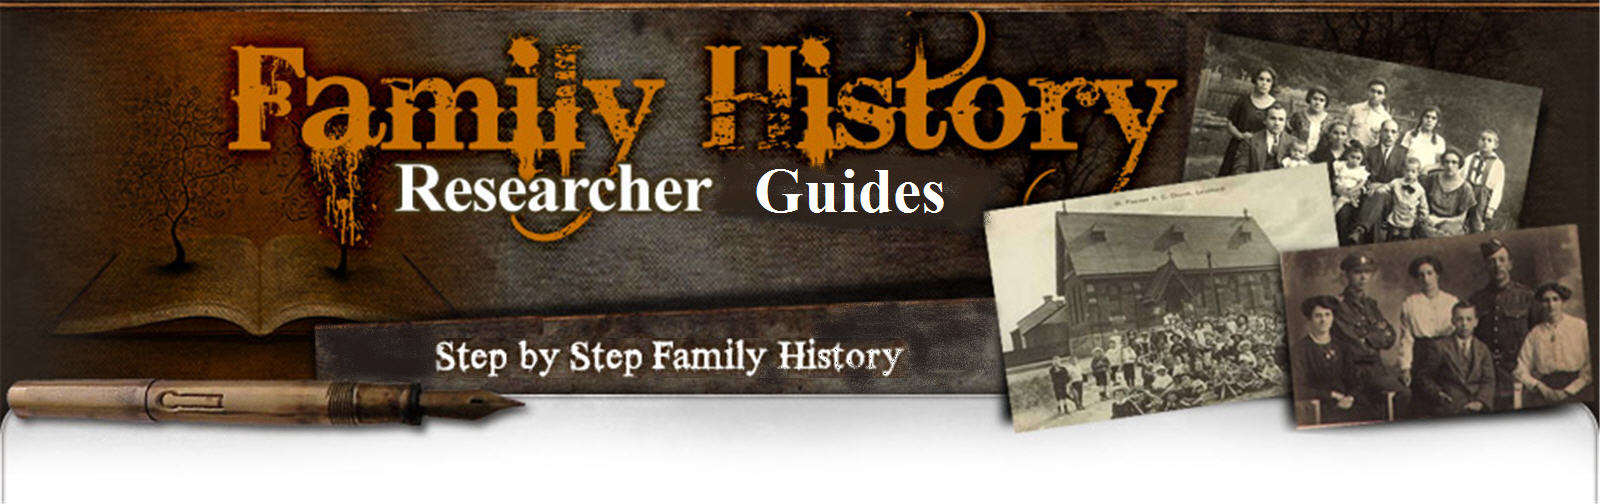 Family History Researcher Guides